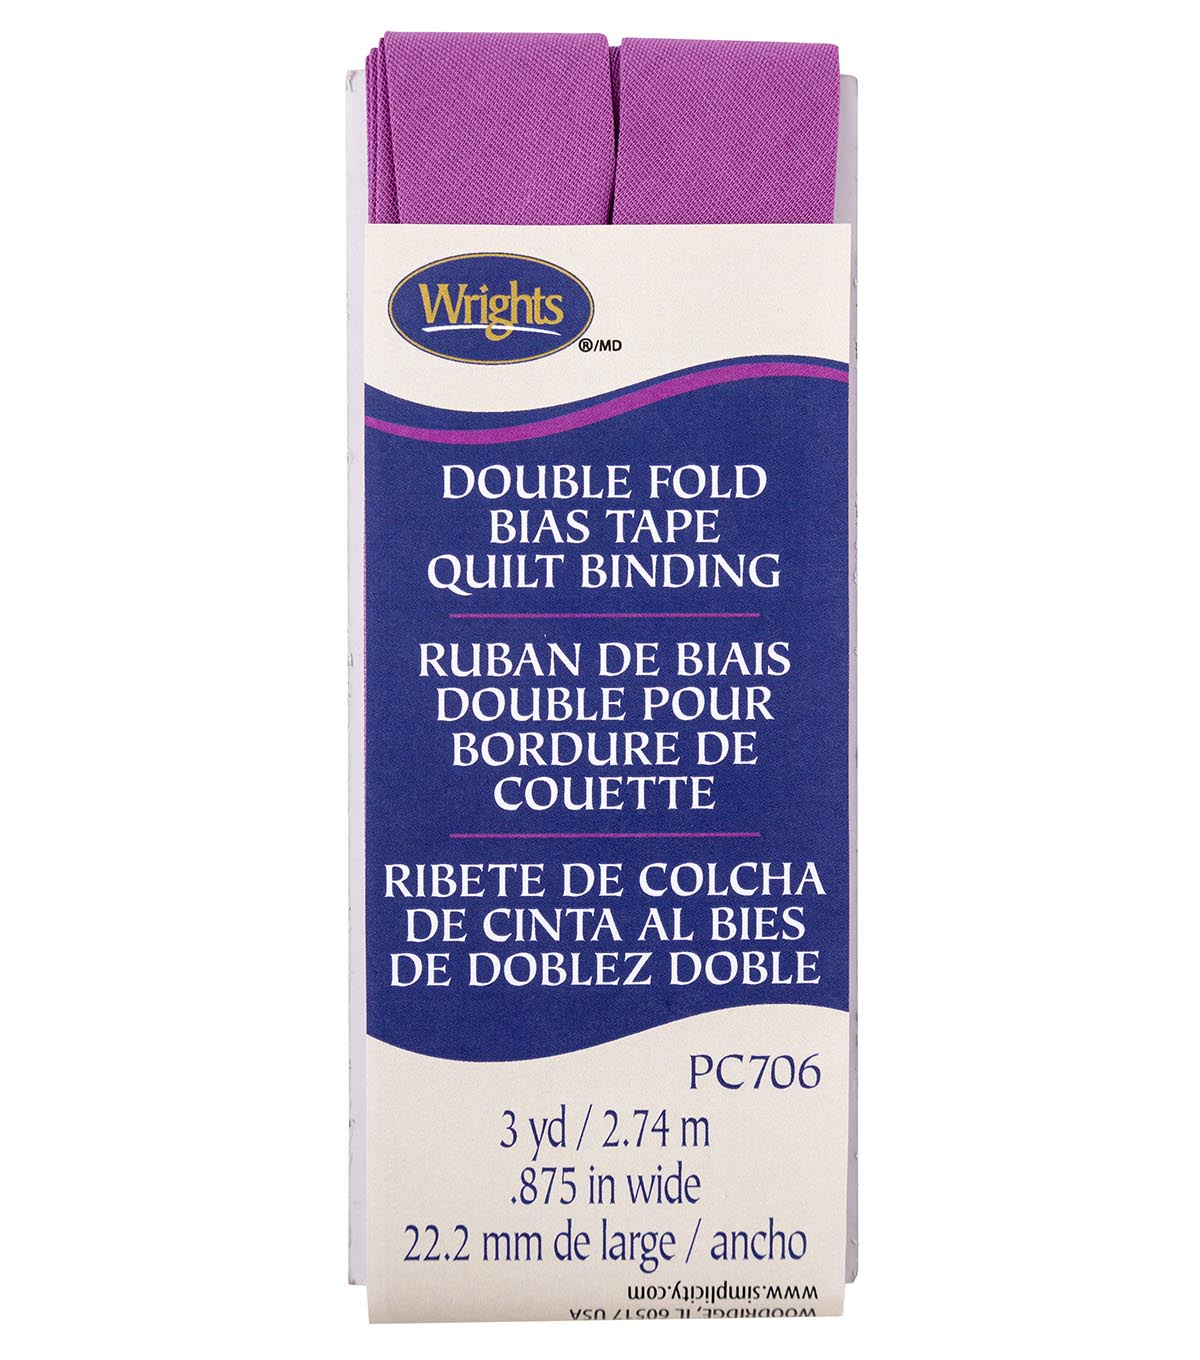 Wrights Double Fold Quilt Binding Bias Tape 7/8\u0027\u0027x3 yds-Orchid